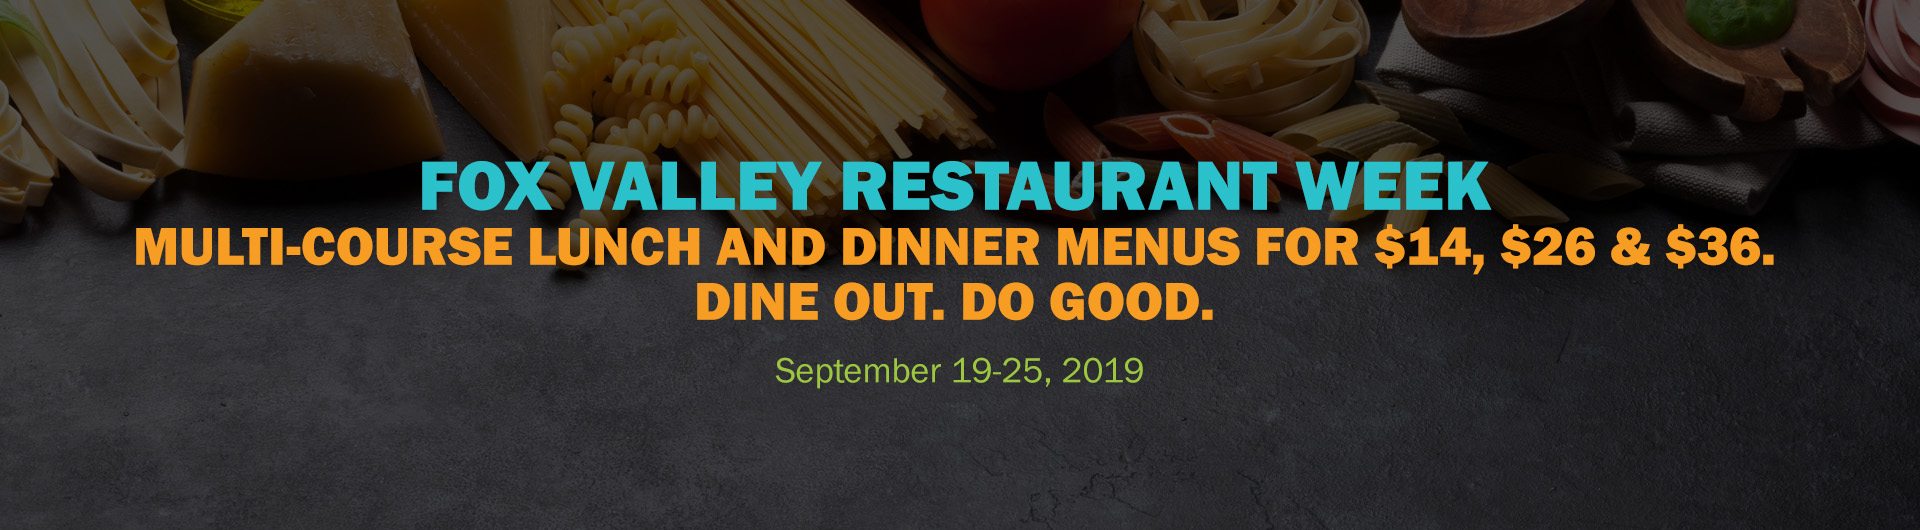 Fox Valley Restaurant Week